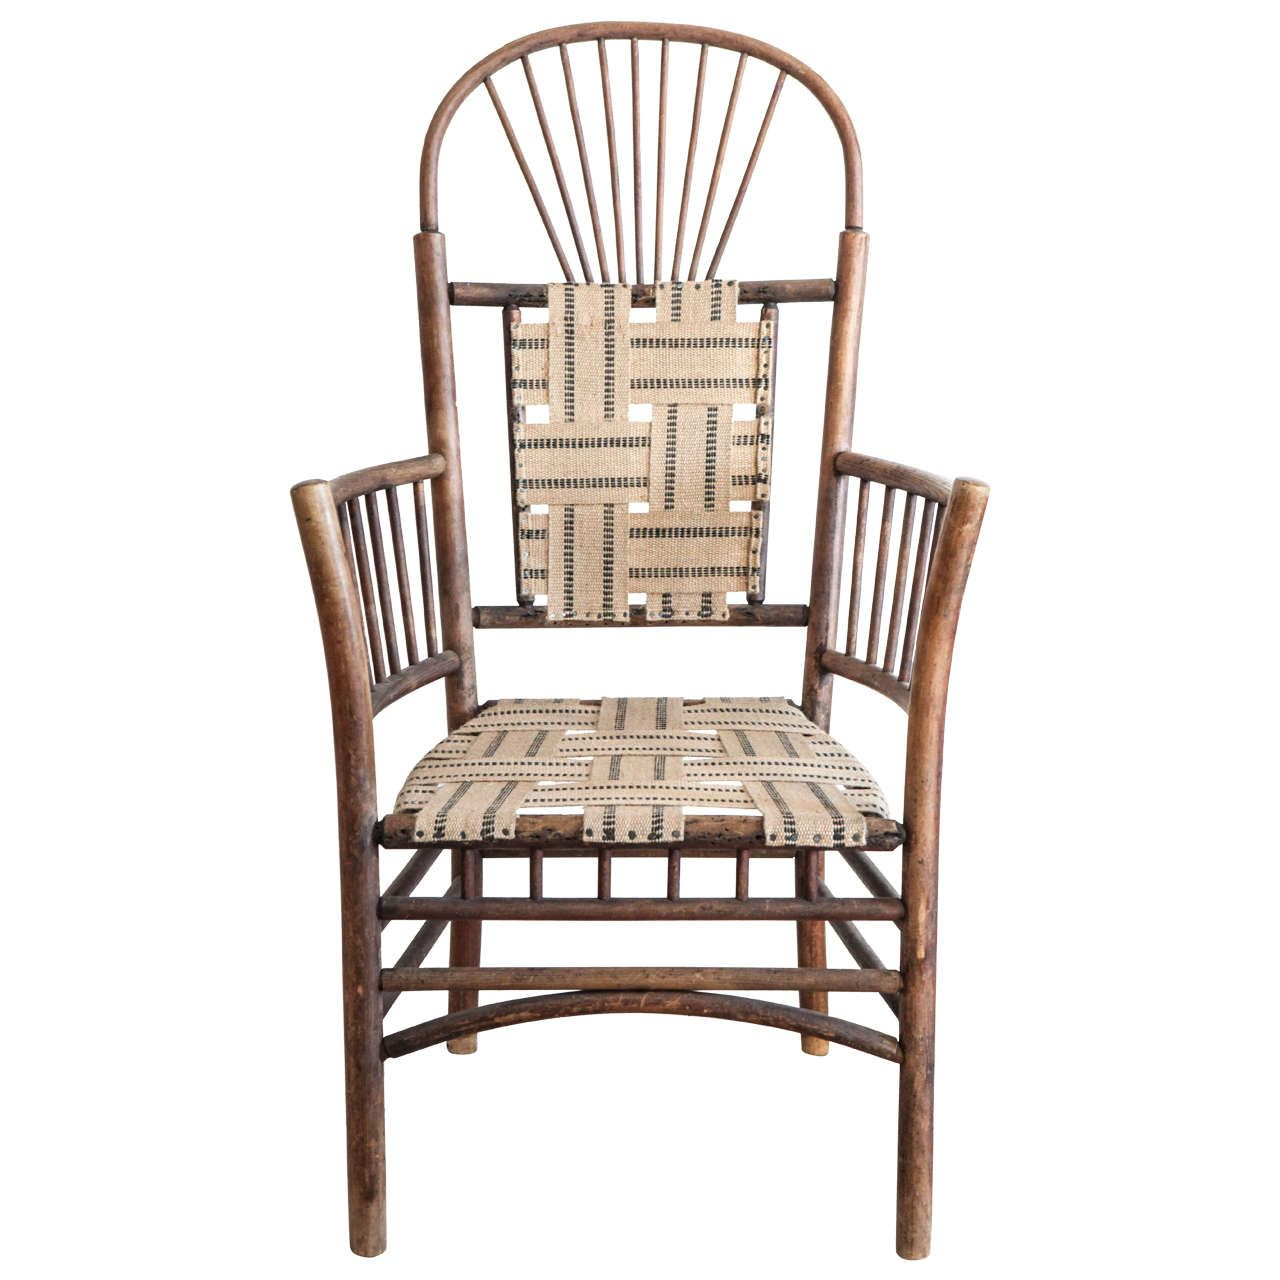 Windsor Style Rustic Armchair | From a unique collection of antique and modern armchairs at https://www.1stdibs.com/furniture/seating/armchairs/